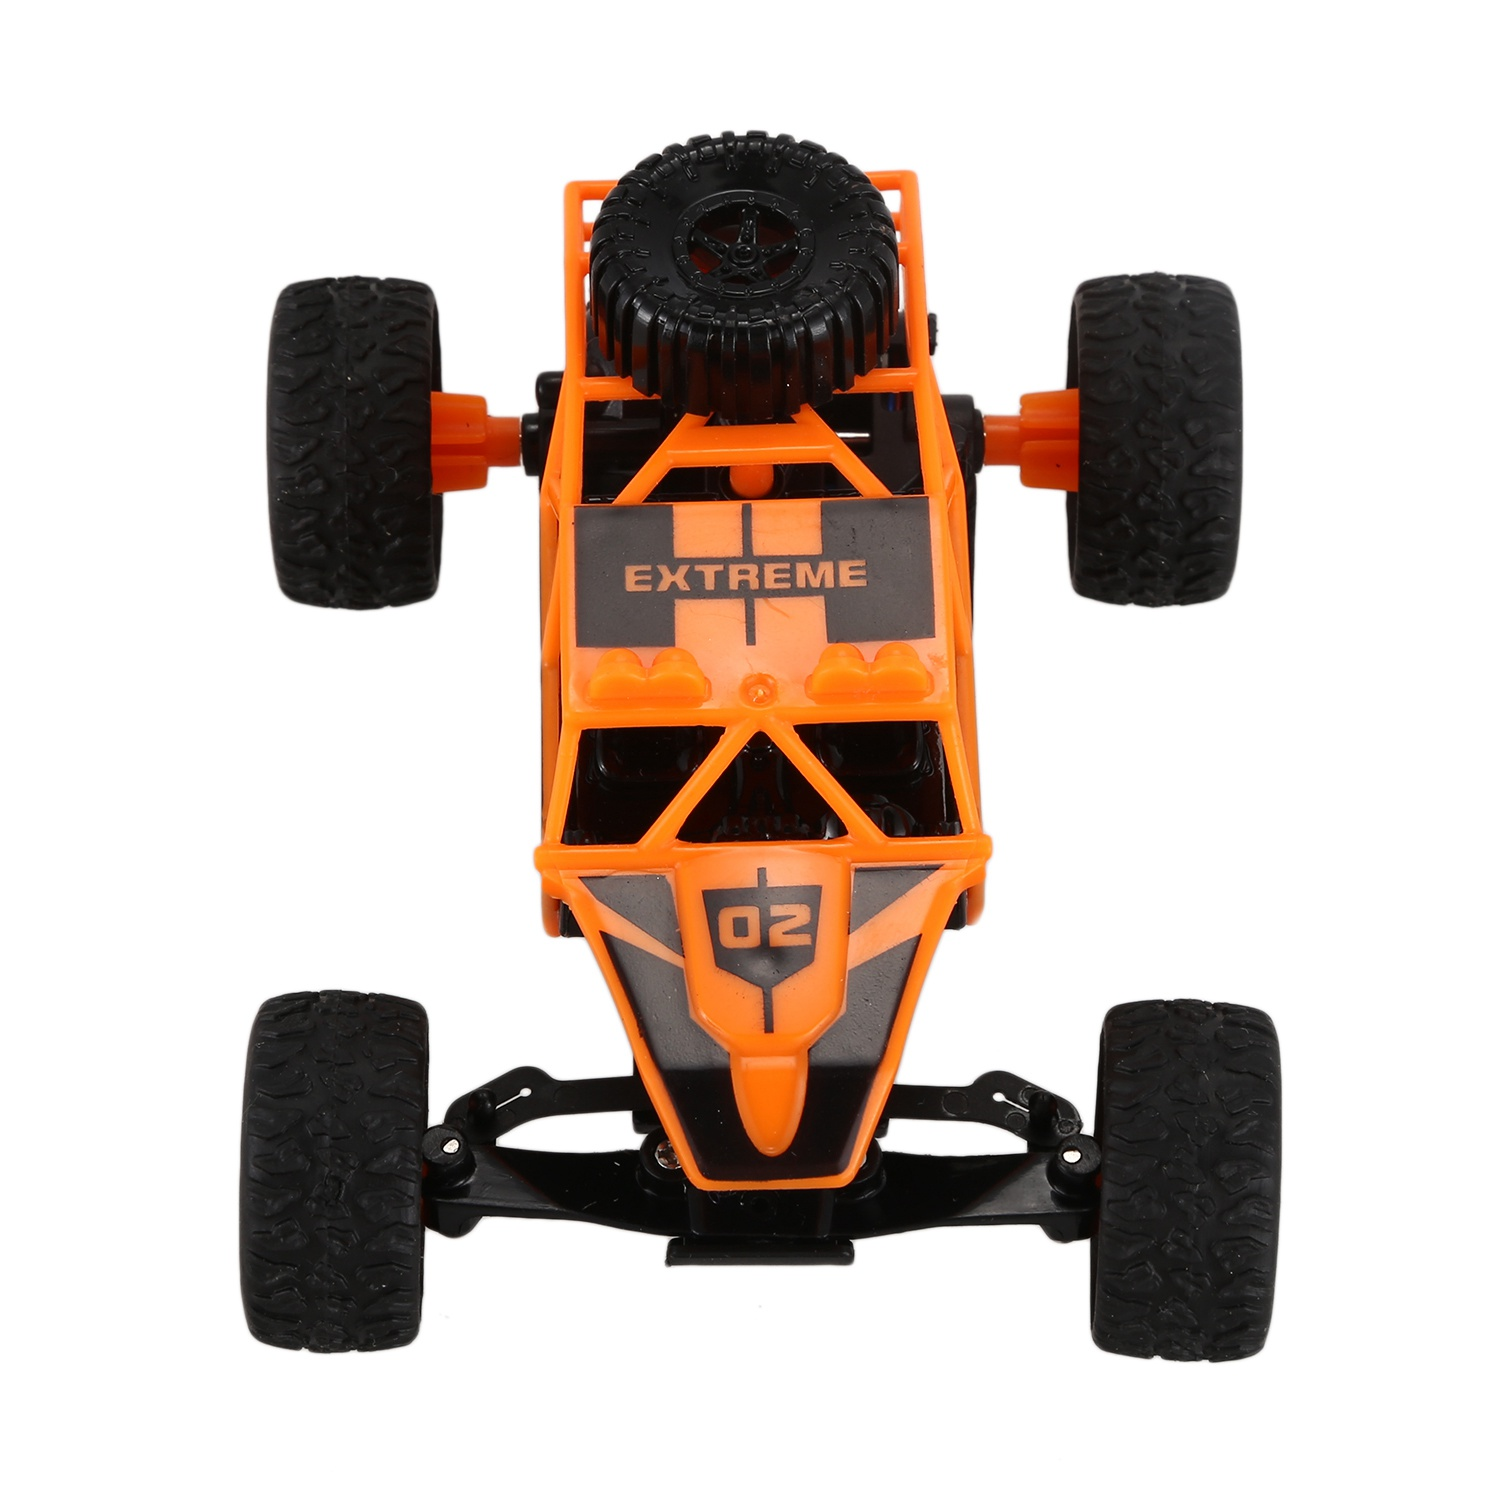 FBIL-Rc Car 1:40 <font><b>Scale</b></font> 2.4G 4Wd Off-Road Buggy High Speed Racing Car Remote Control Truck 4 <font><b>Wheel</b></font> Climber image